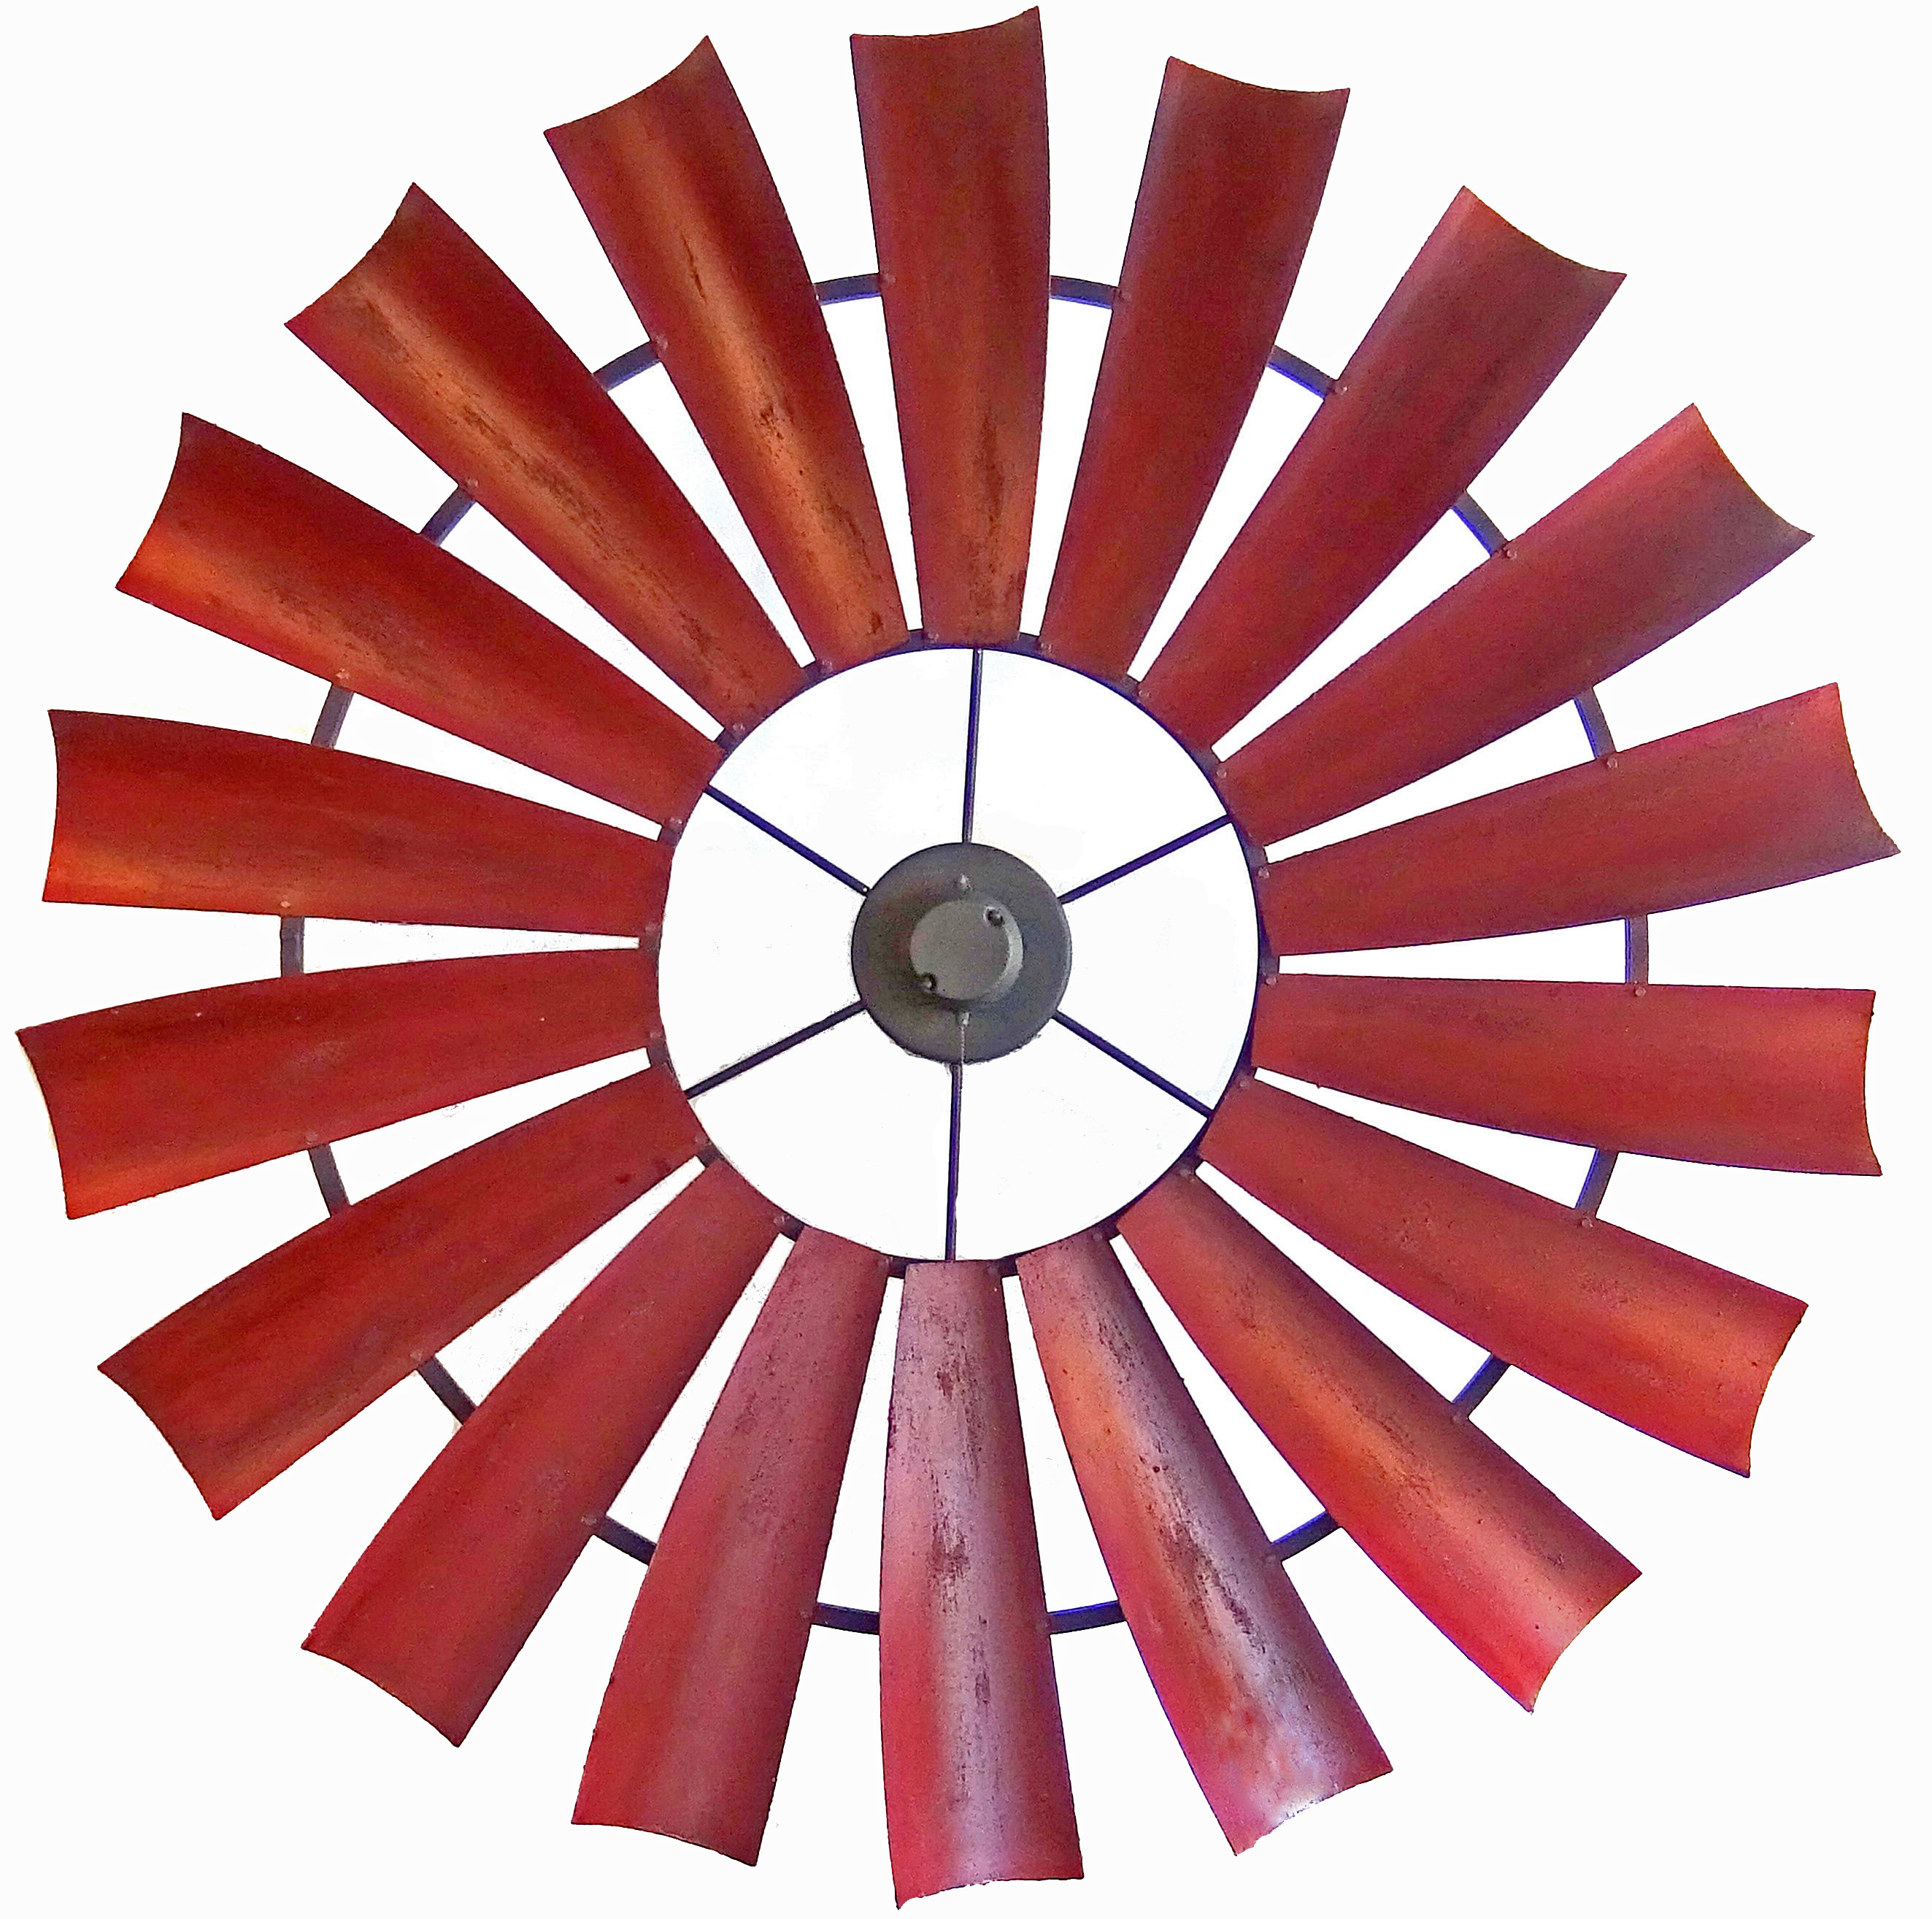 weathered-red-fan-1